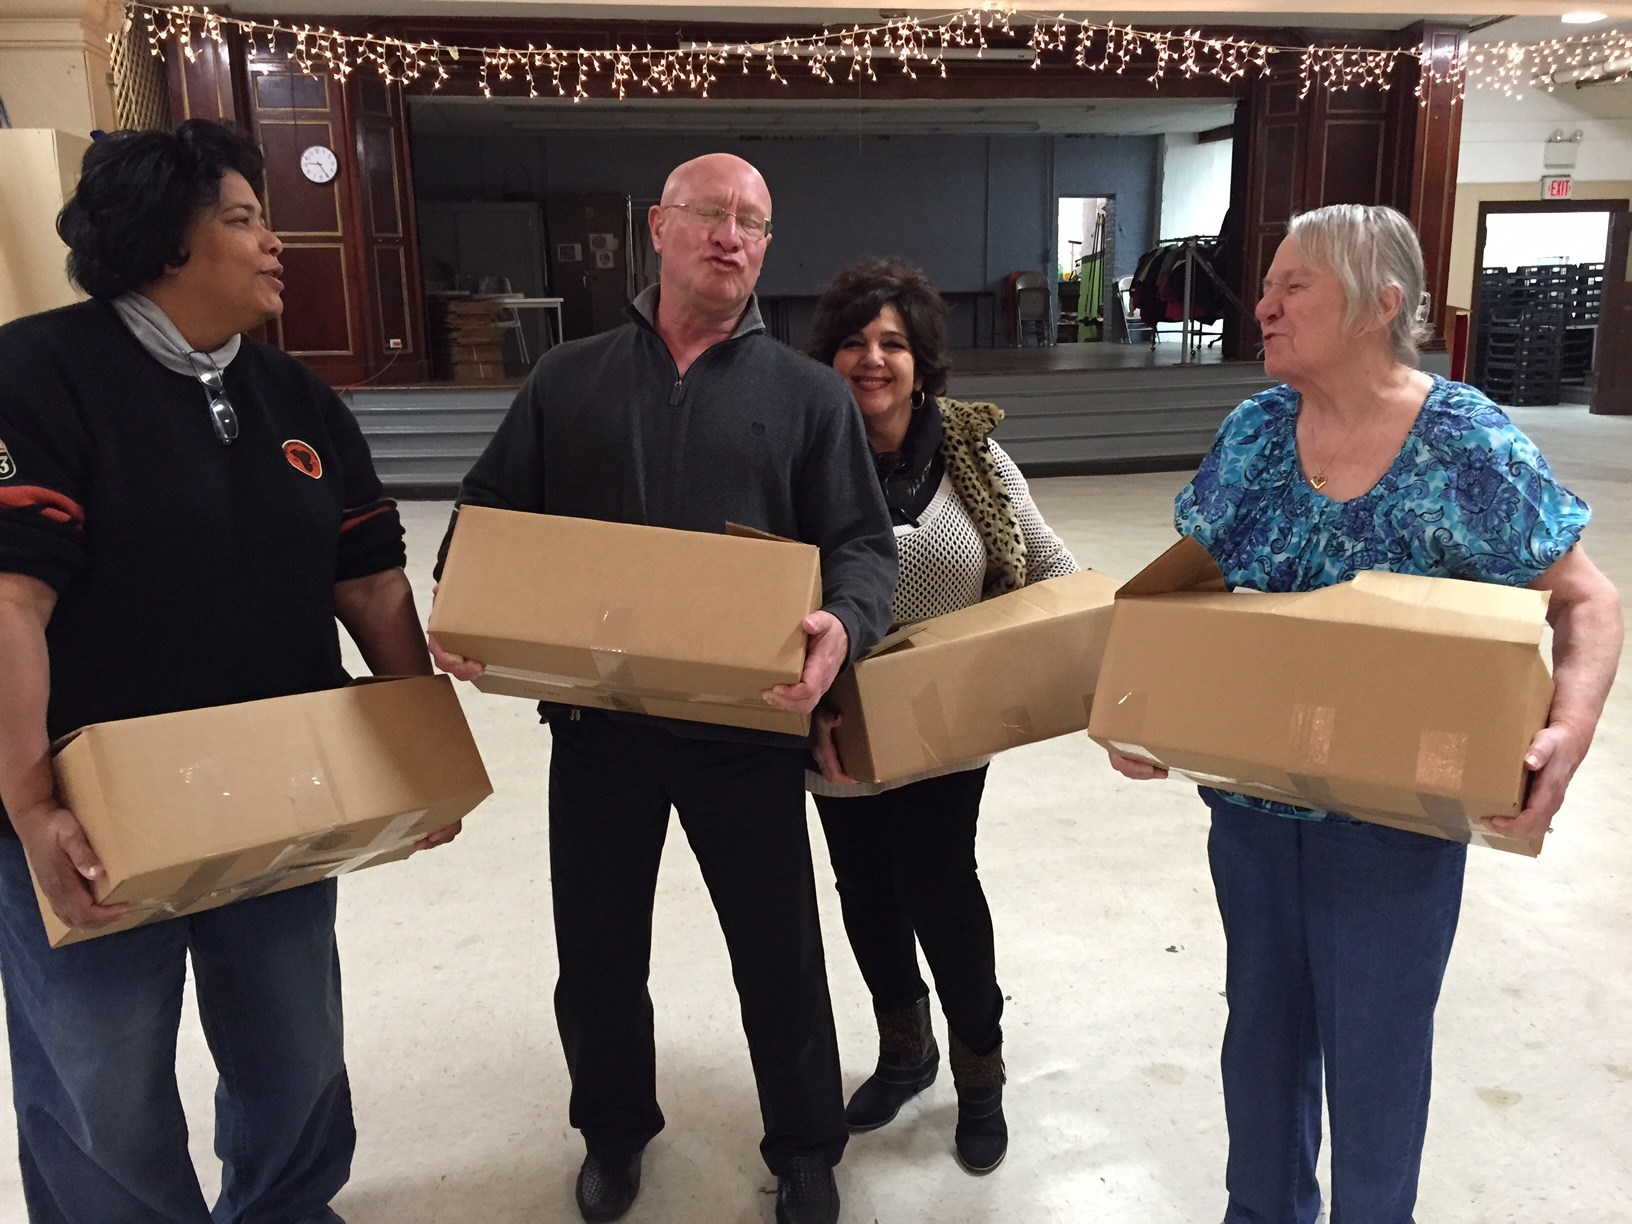 IMG_1271-2.JPGKaren Hazard, Paul D'Abbraccio, Maria Berarducci and Sylvia Peckham   Volunteering at St. Vincent DePaul Ministry the day before Thanksgiving 2015.JPG